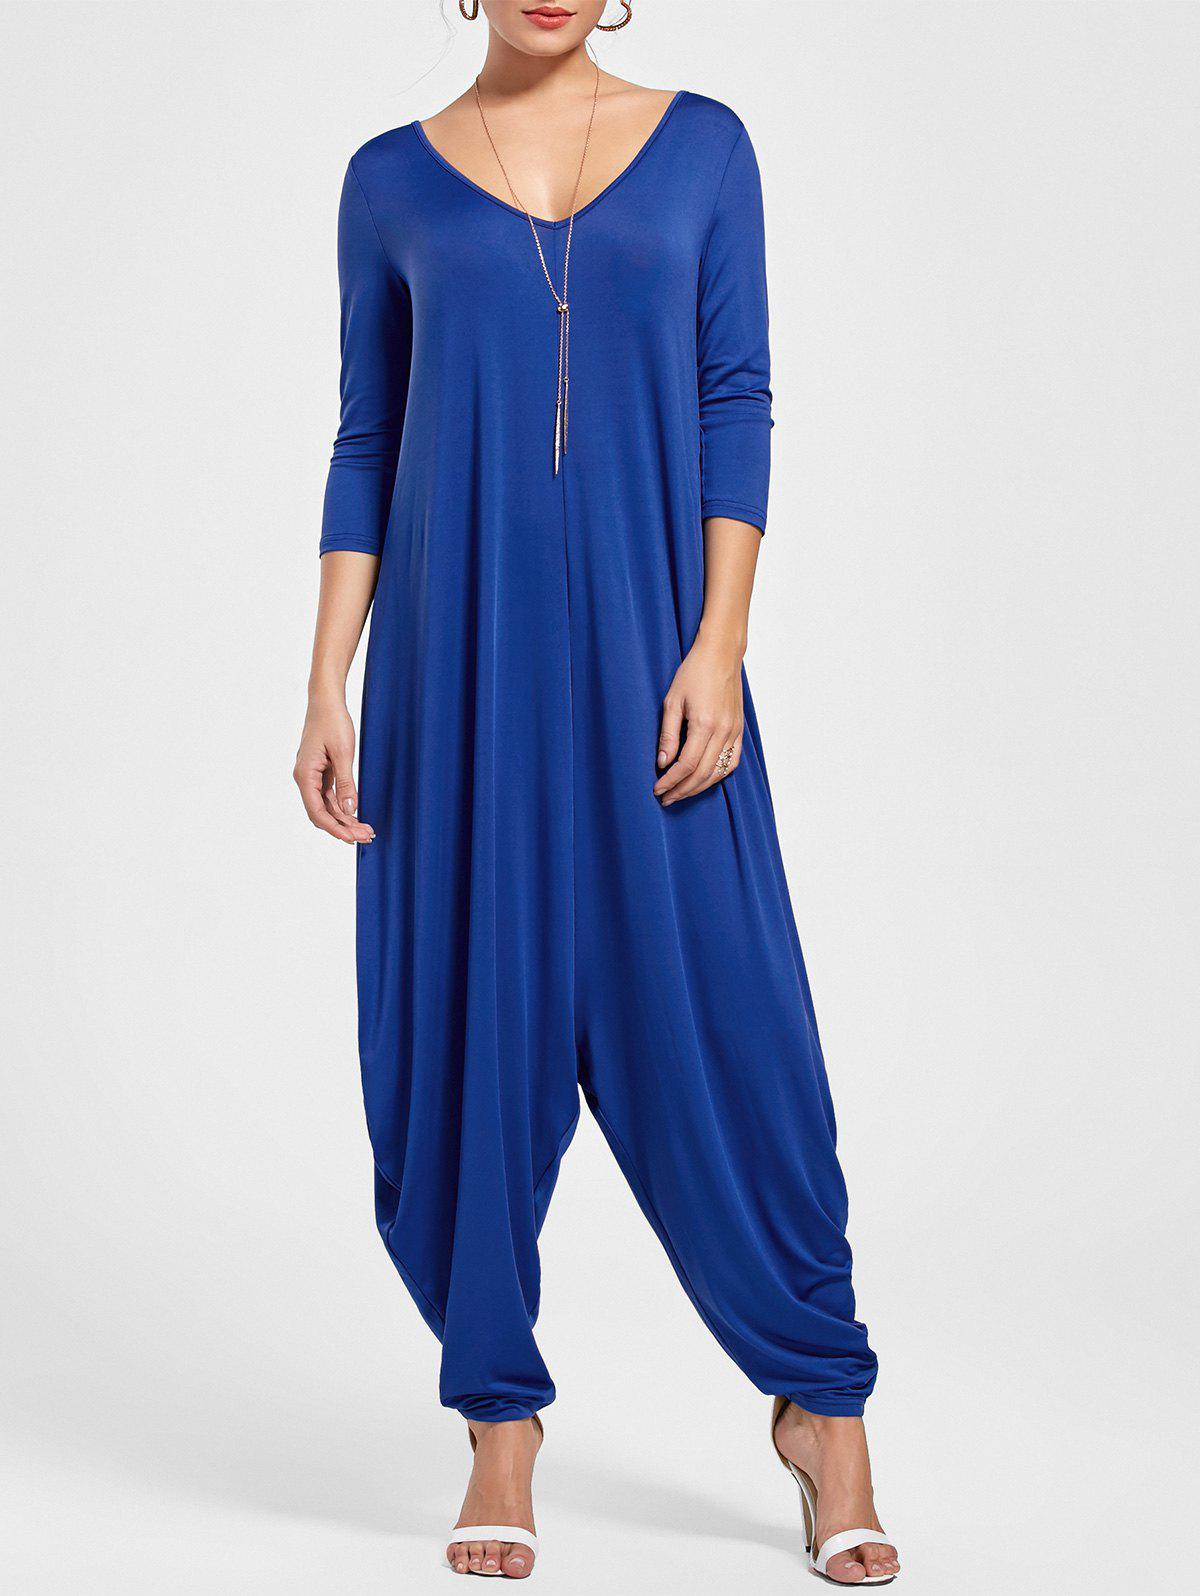 V Neck Draped Cut Out Baggy Jumpsuit - BLUE 2XL